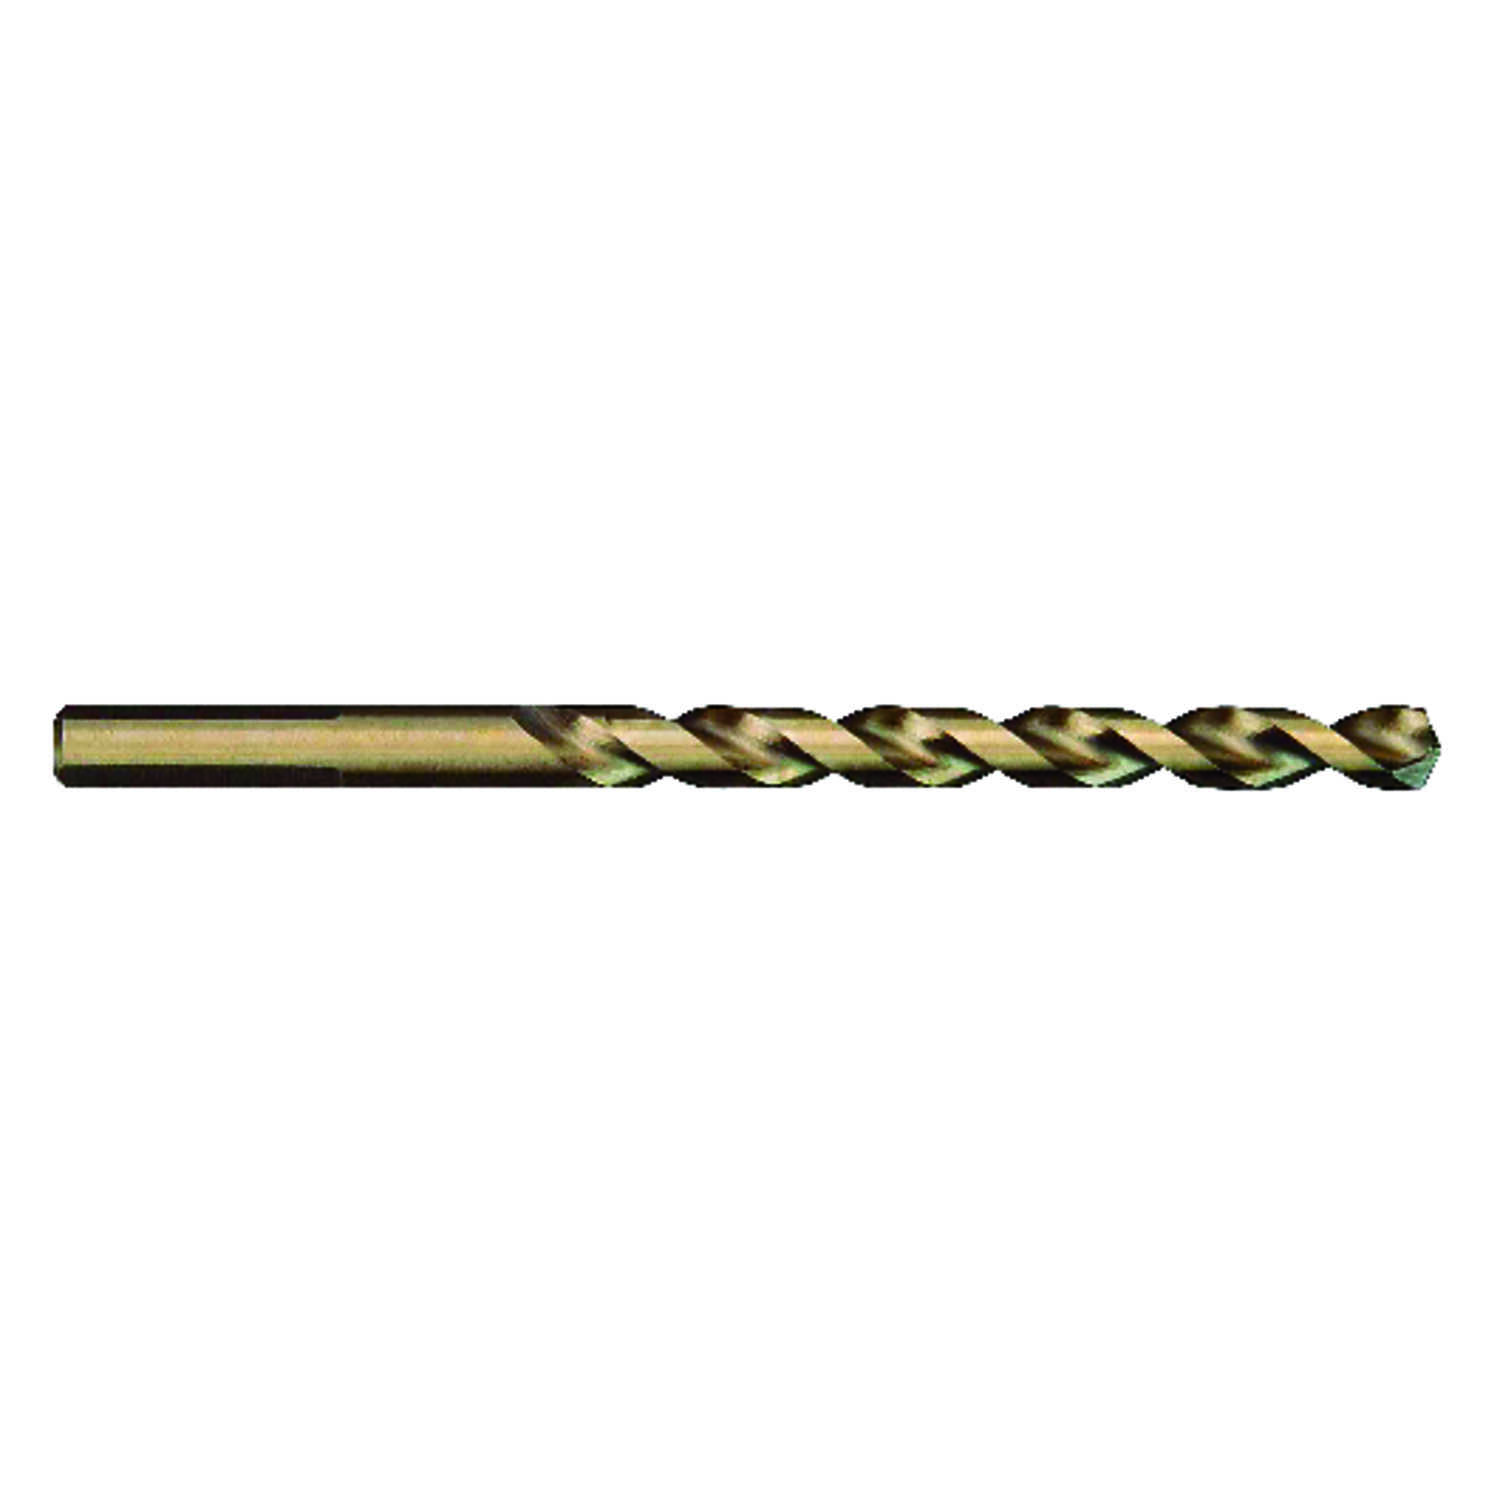 Milwaukee  RED HELIX  7/16 in. Dia. x 5 in. L Cobalt Steel  THUNDERBOLT  Drill Bit  1 pc.